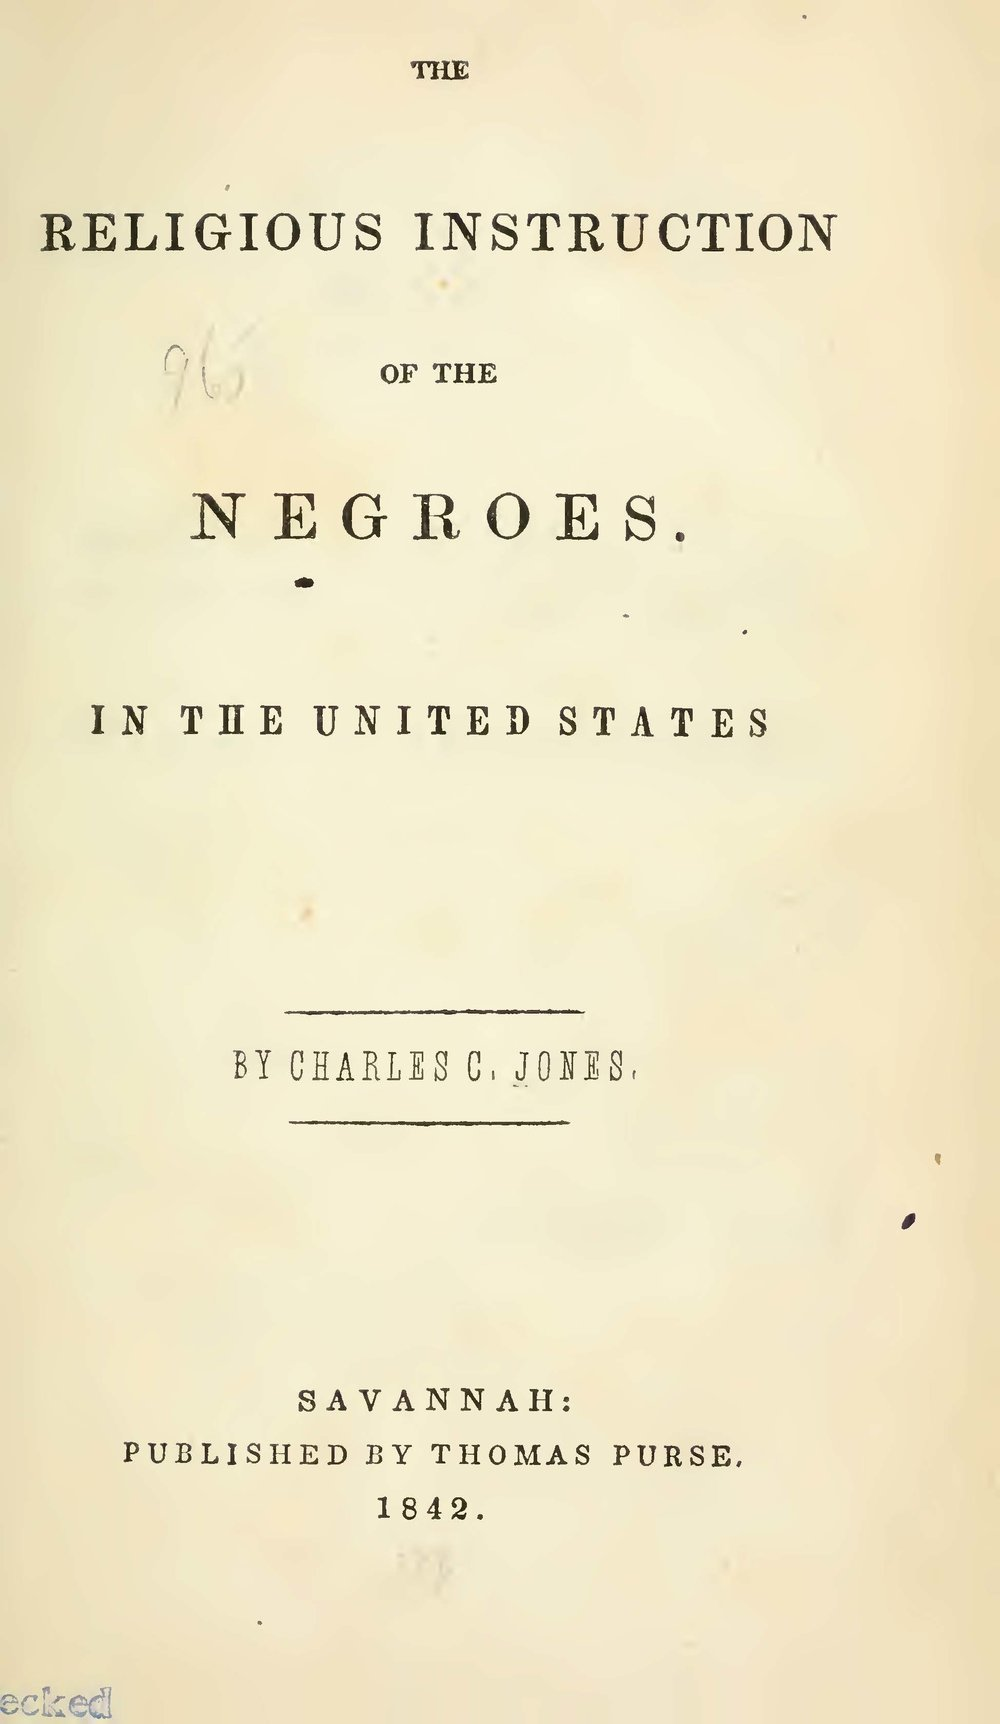 Jones, Charles Colock, The Religious Instruction of the Negroes in the United States Title Page.jpg